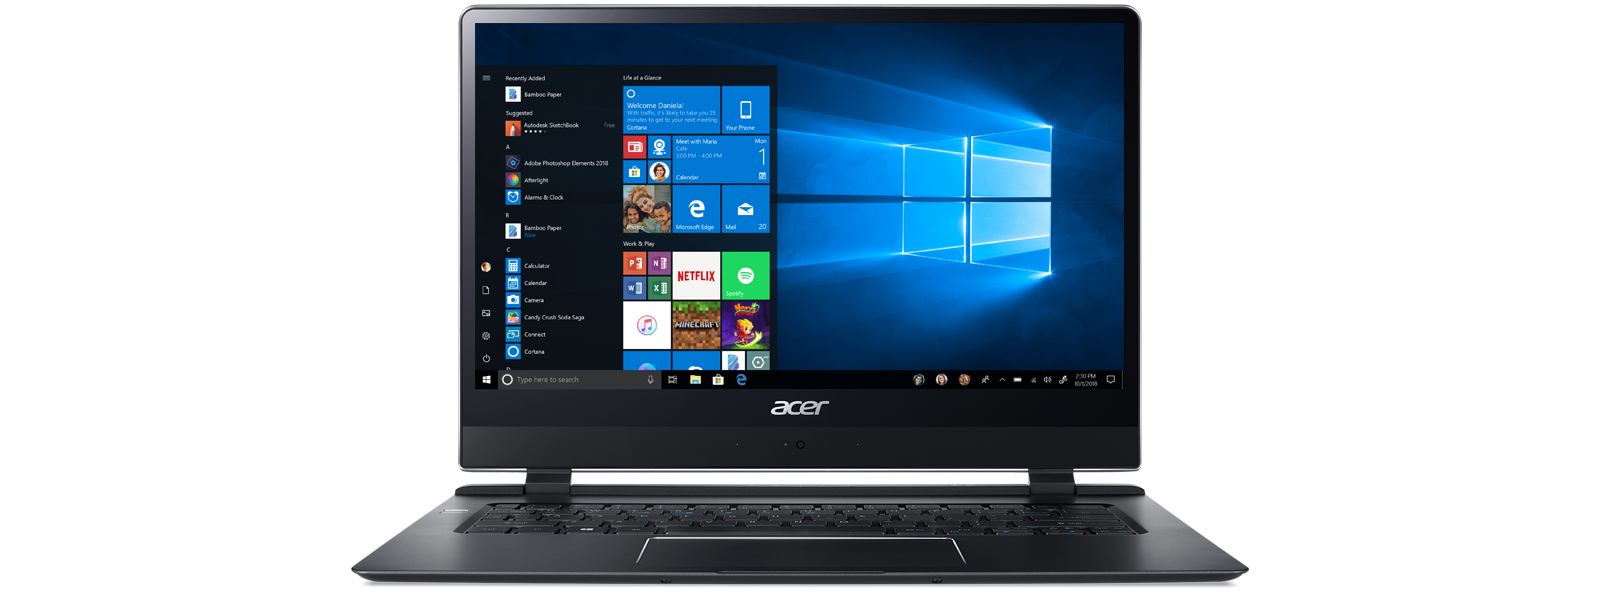 Front-facing view of the Acer Swift 7